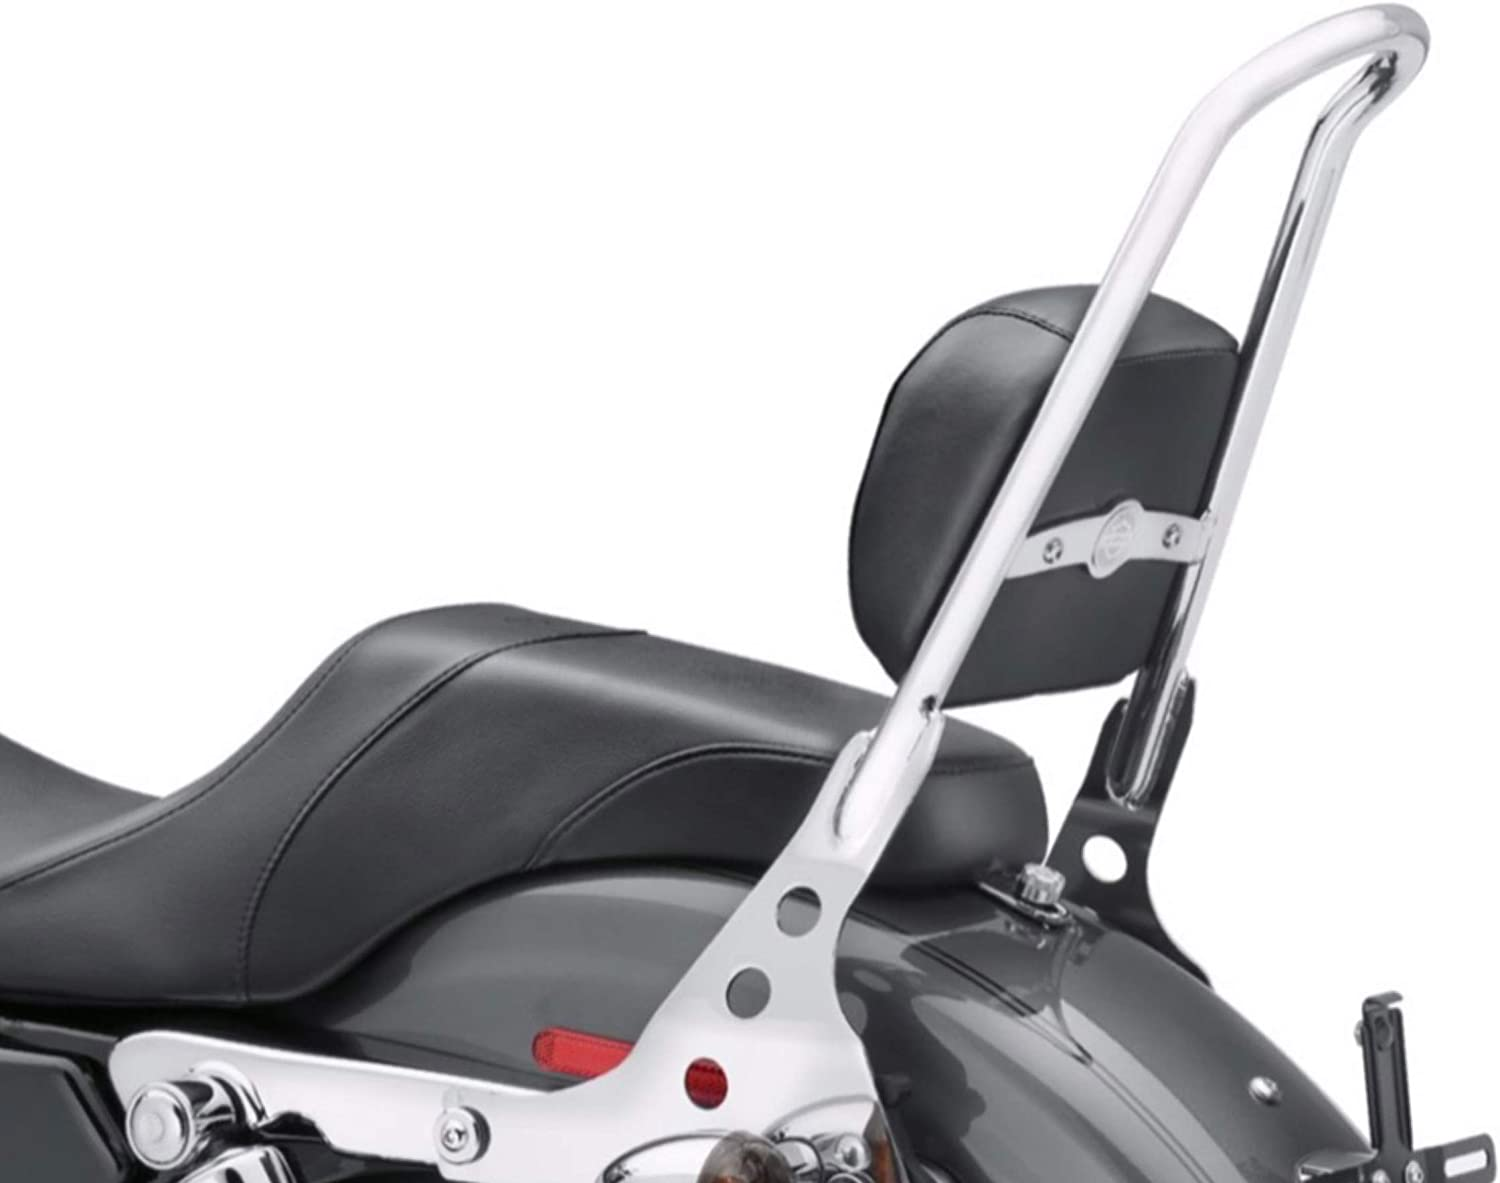 Chrome One Piece Detachable Passenger Sissy Bar Backrest Pad Harley Davidson XL Sportster XL883 883 Forty Eight Nightster Iron Super Low SuperLow 04-2020 XL1200 1200 Sissy Bar 52300044A Pads 52631-07